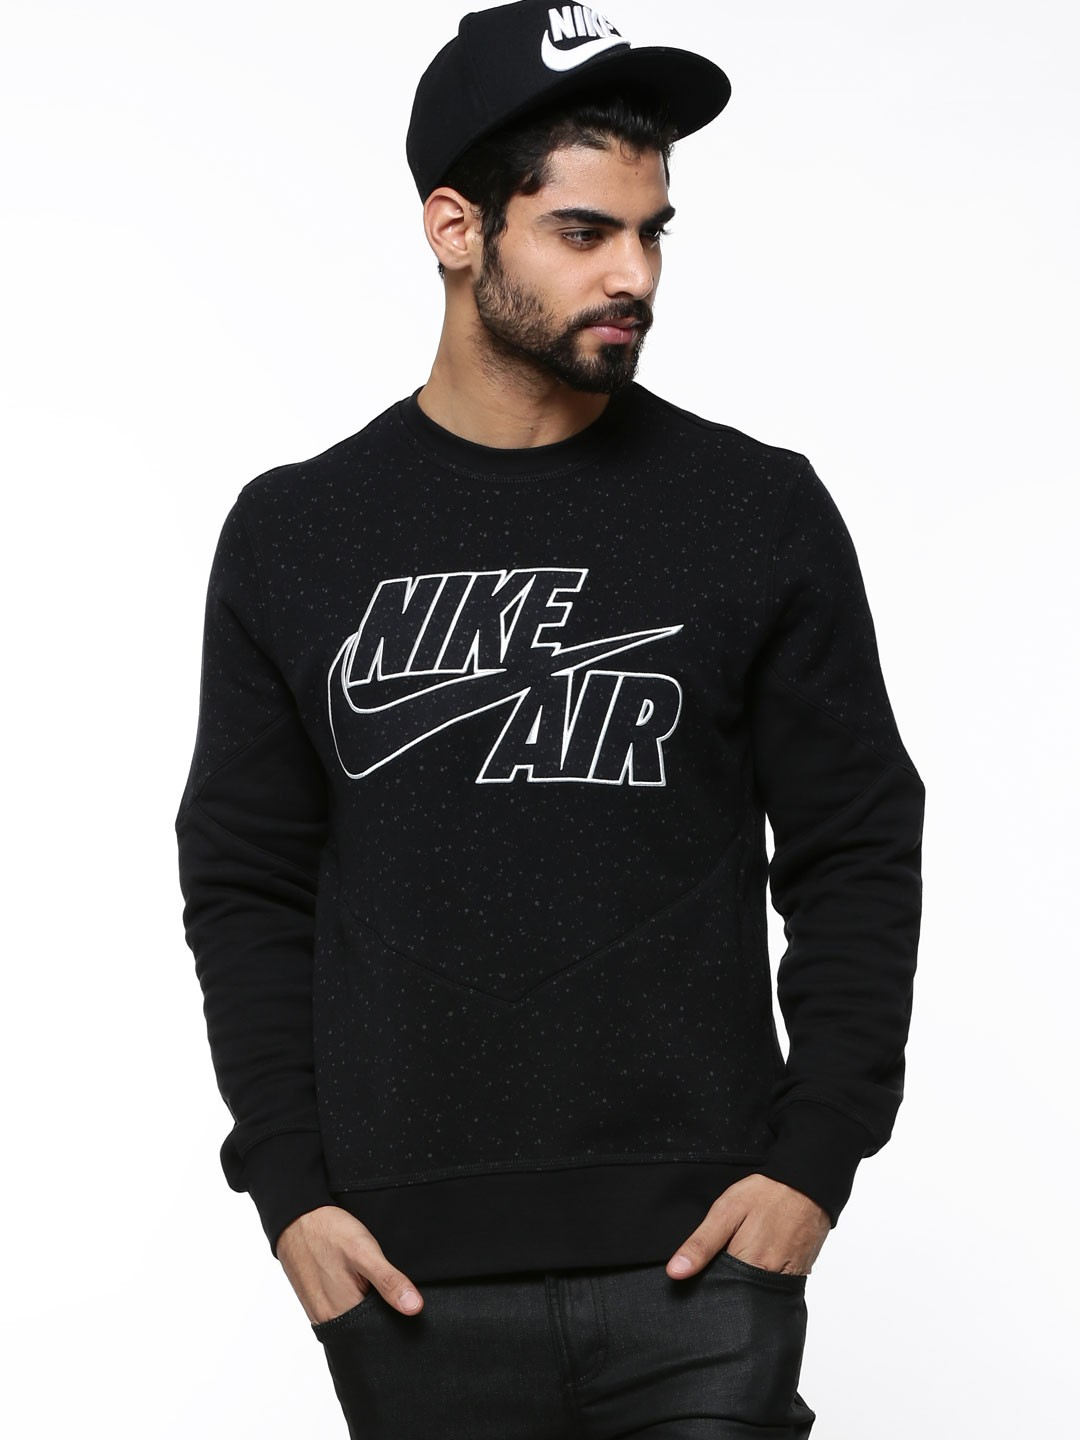 buy nike aw77 basketball sweatshirt for men men 39 s black. Black Bedroom Furniture Sets. Home Design Ideas